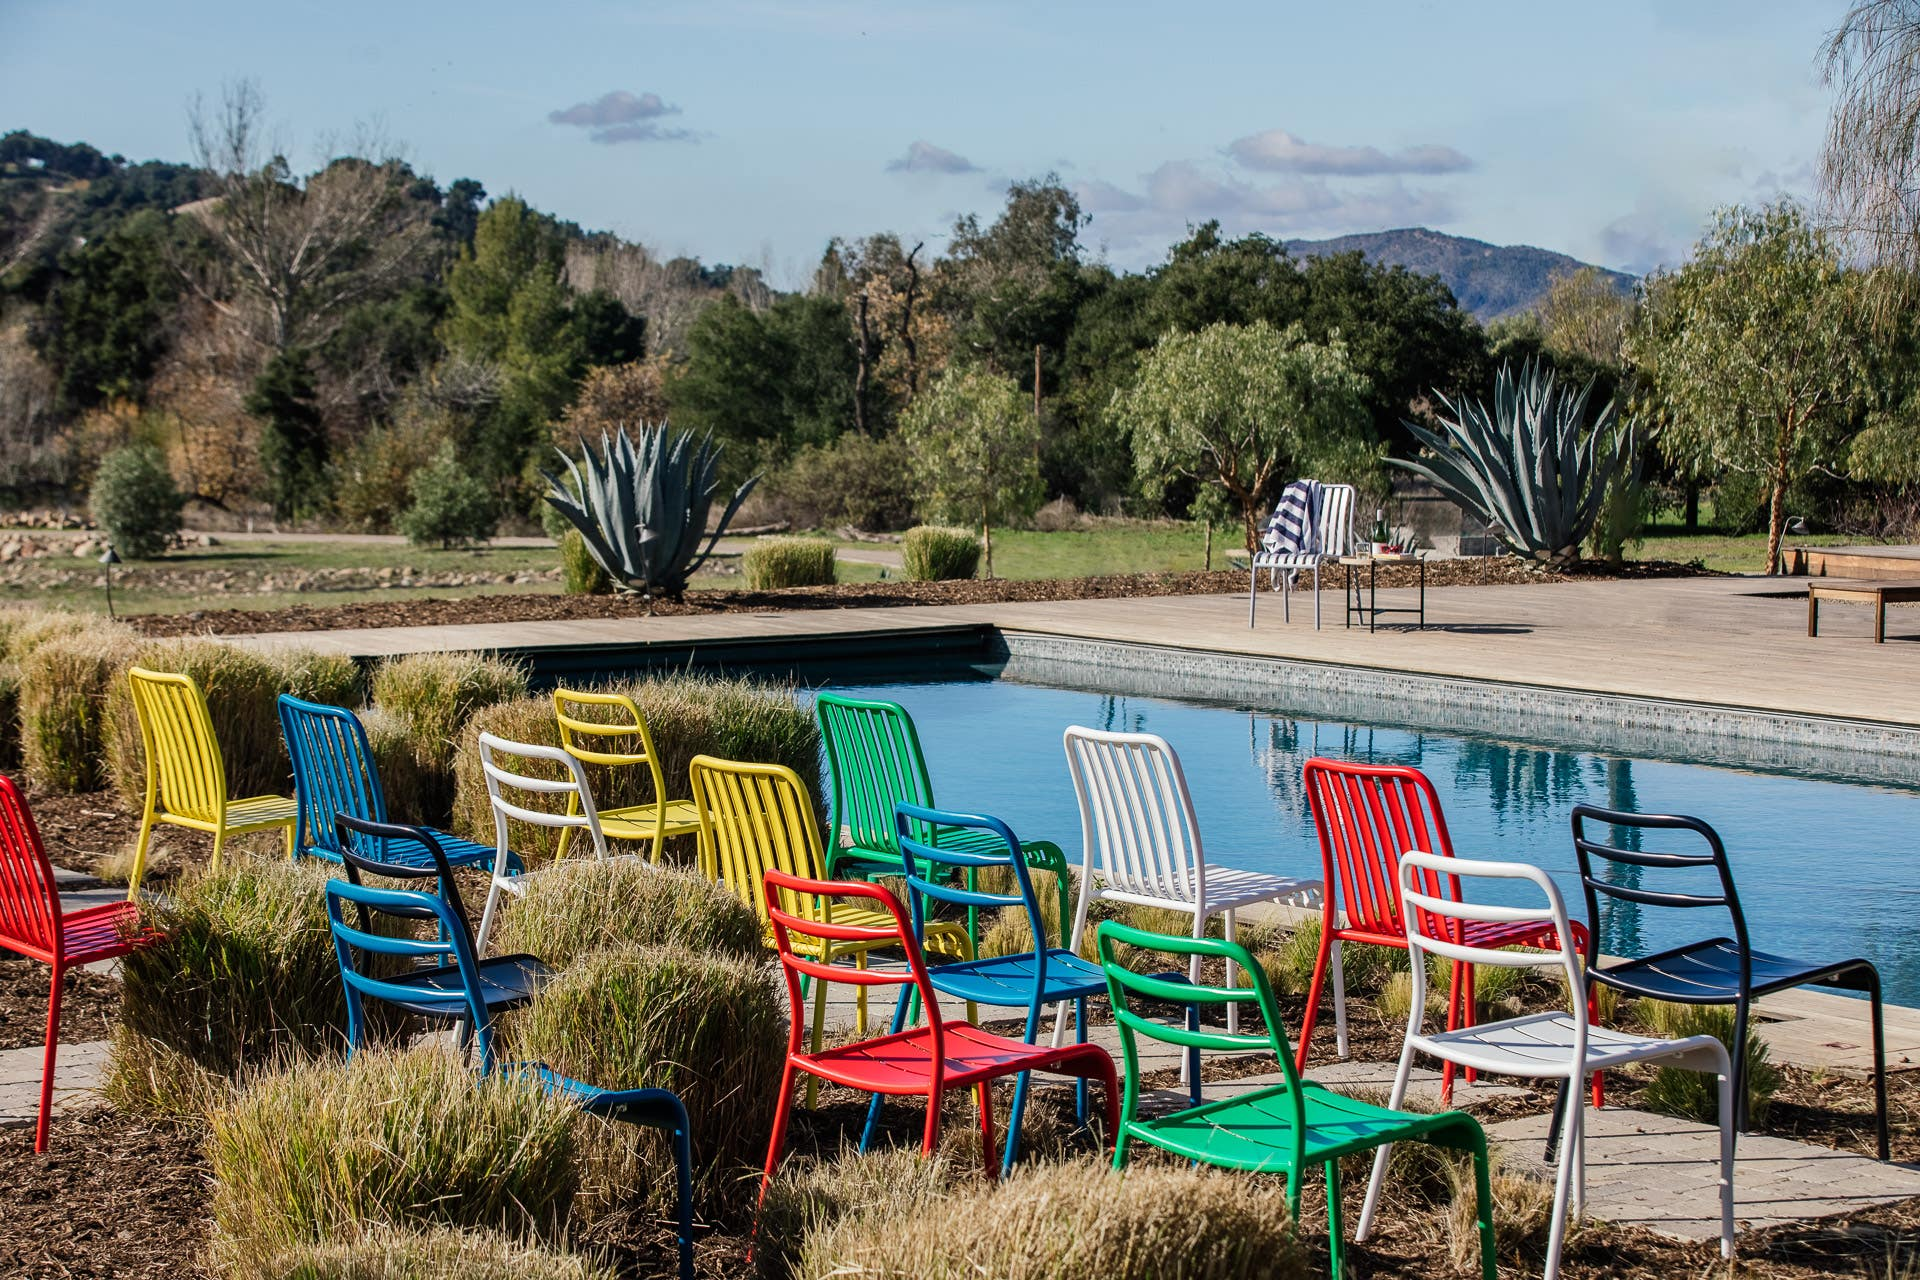 Industry West outdoor chairs in red, green, blue, yellow, and white by a pool in Ojai, California